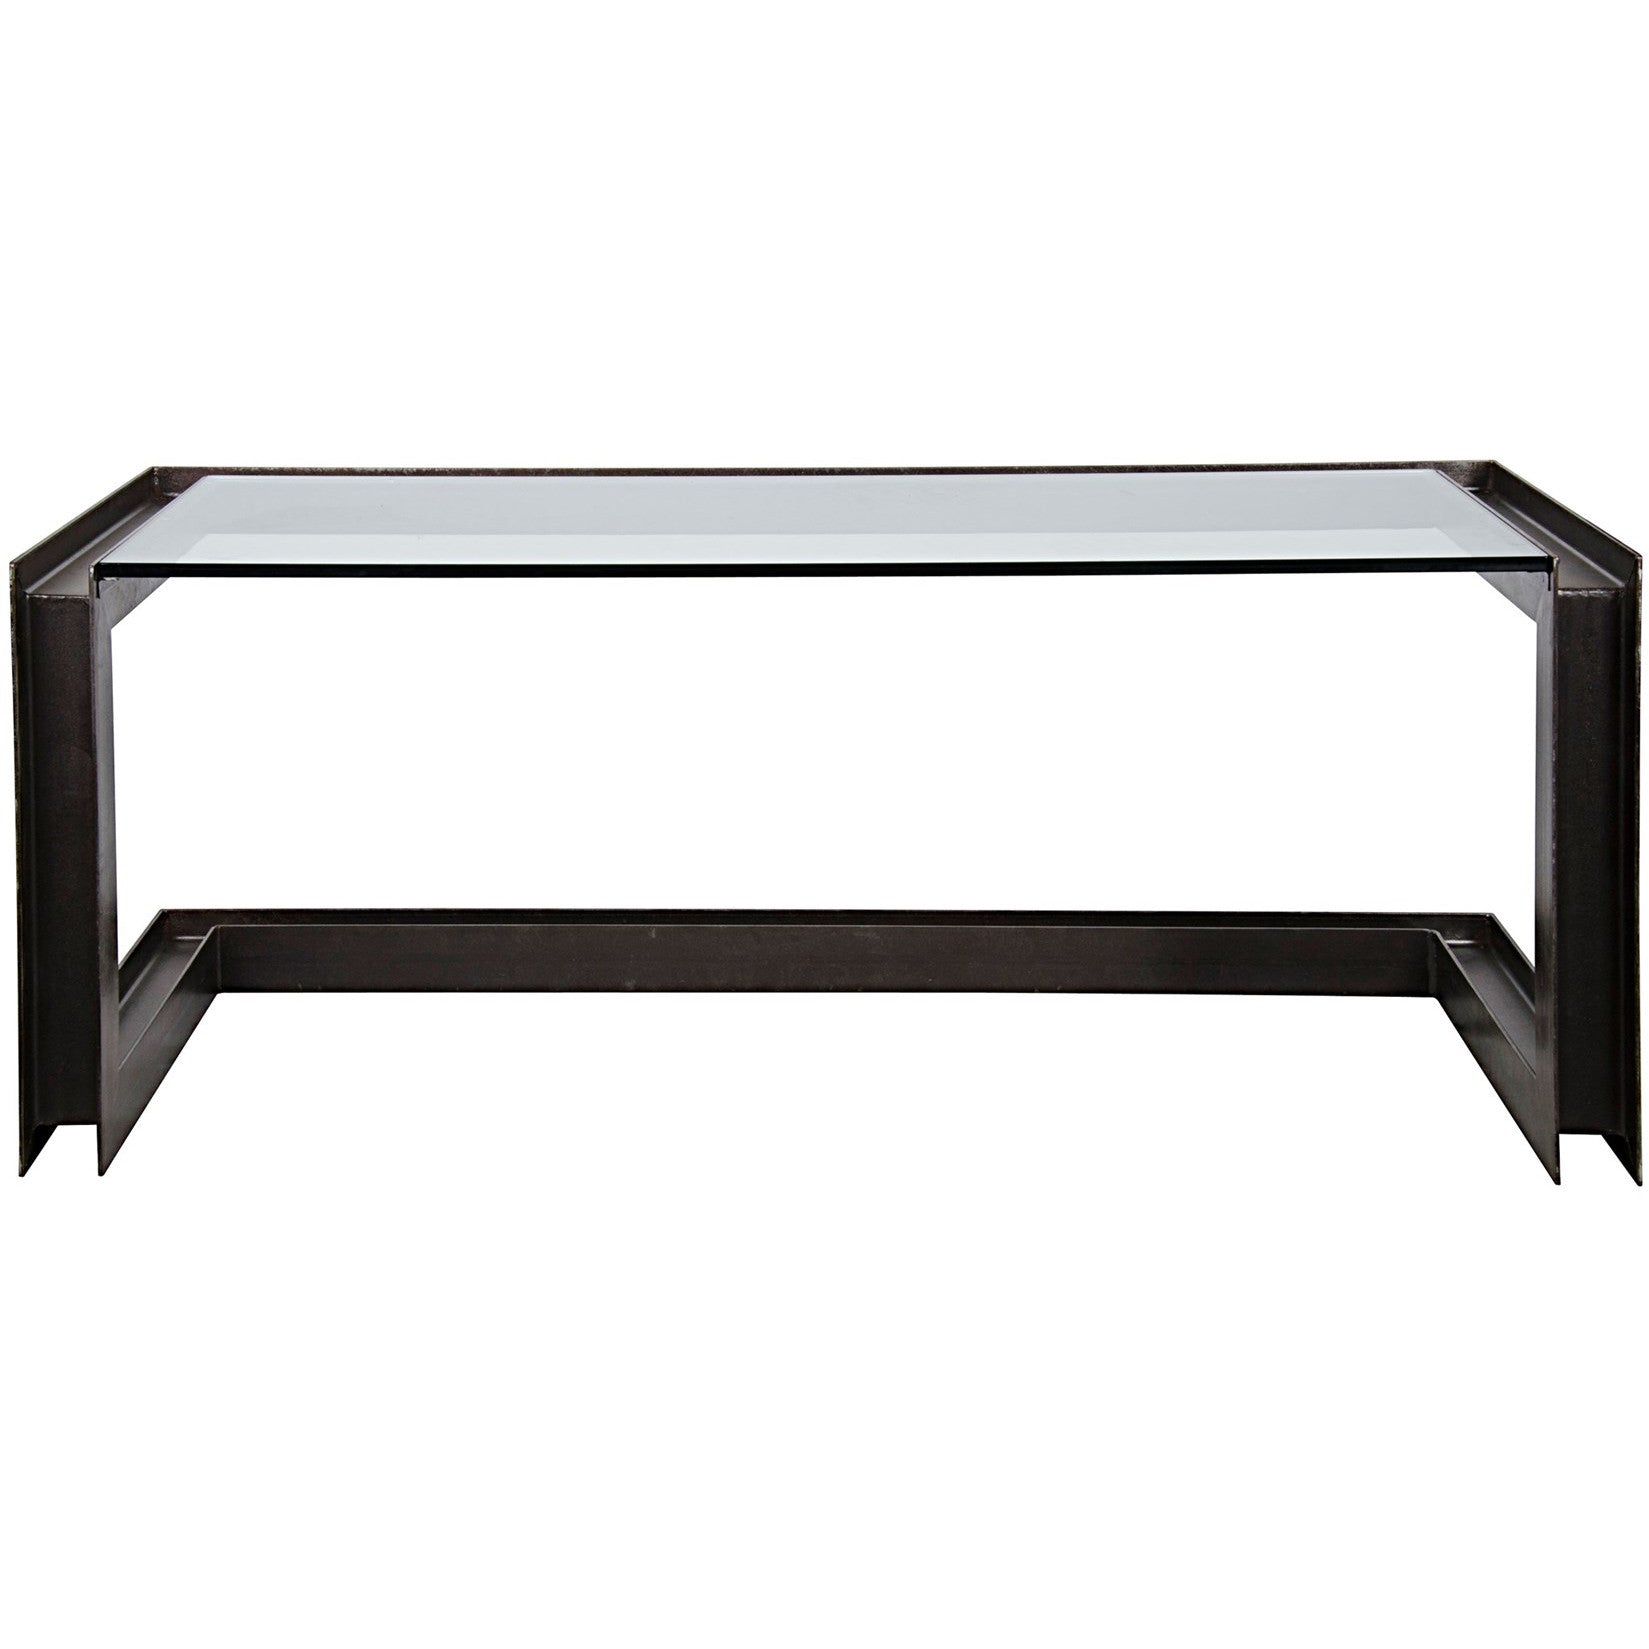 Noir - Structure Metal Desk